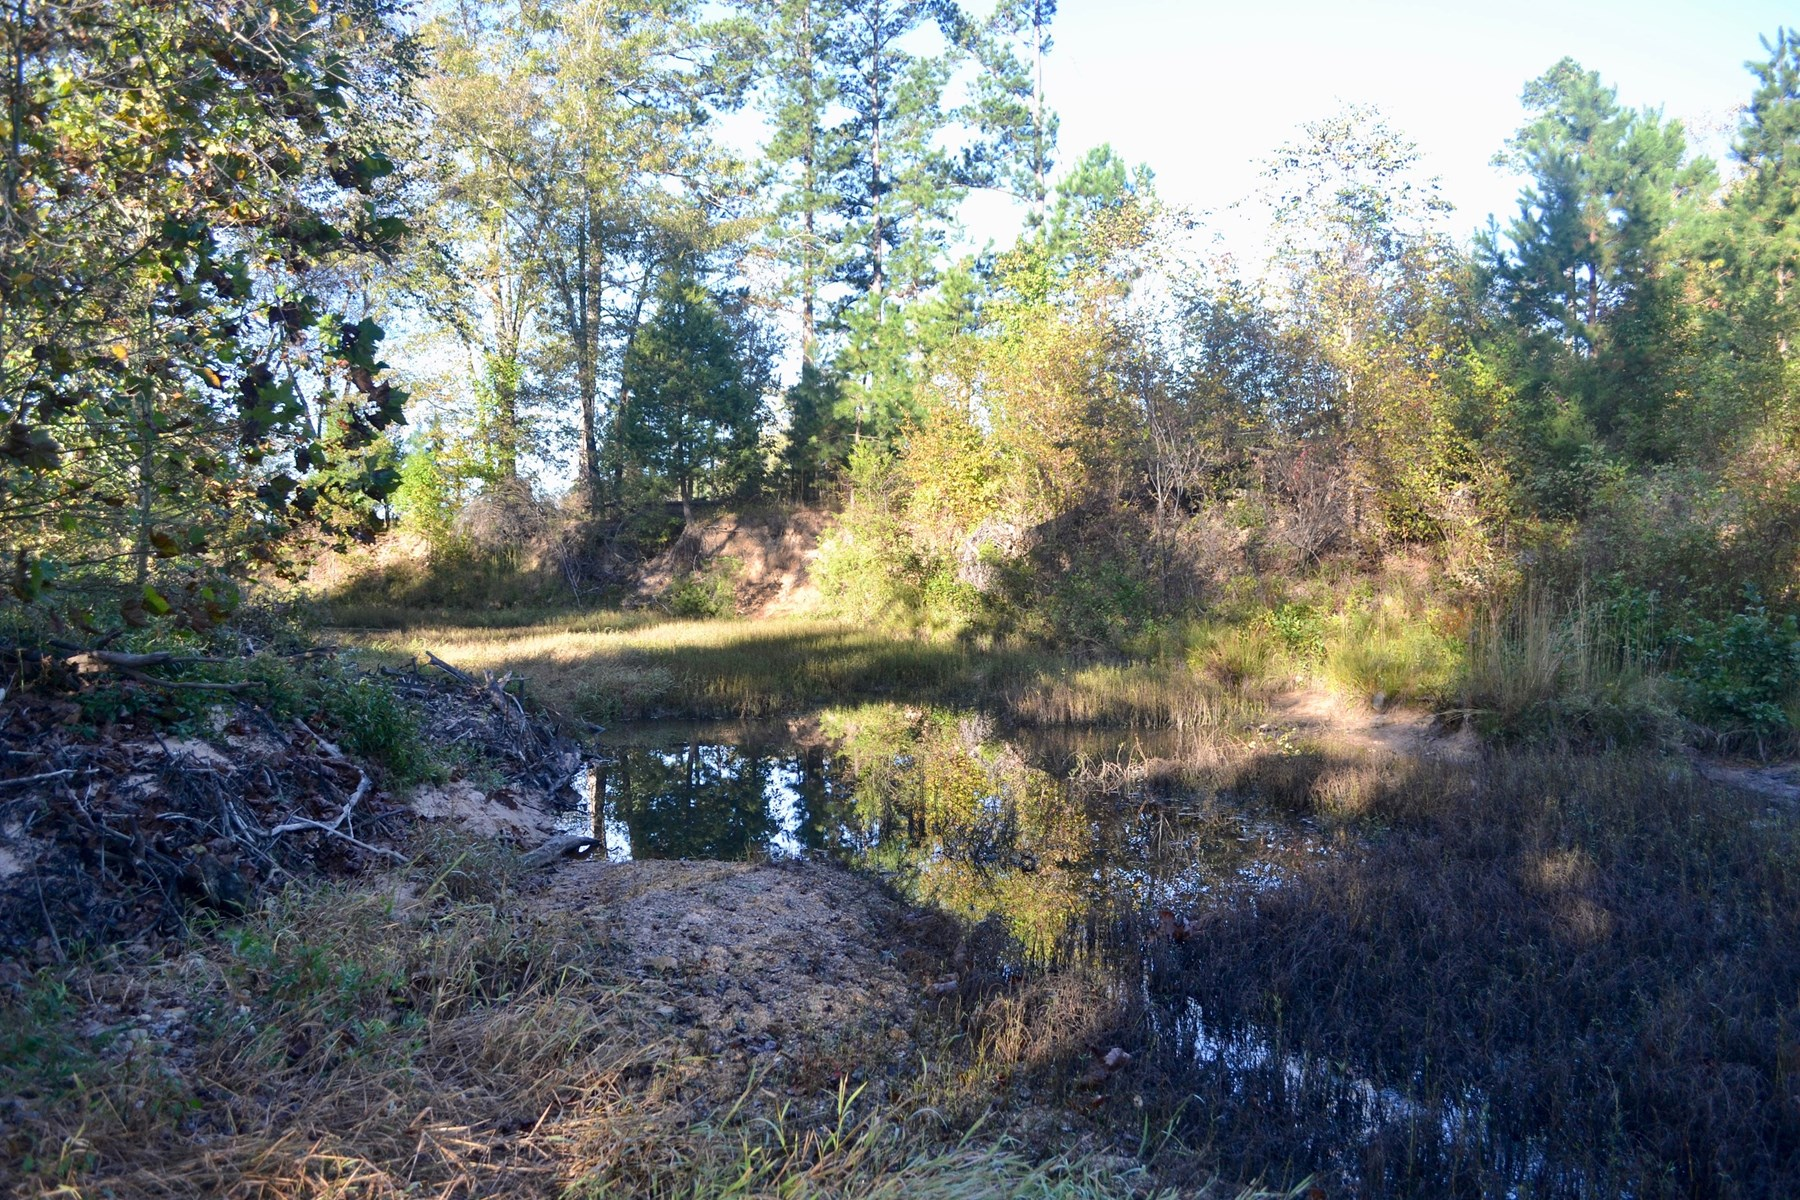 HUNTING RECREATIONAL TIMBER INVESTMENT PROPERTY CHOCTAW COUNTY OKLAHOMA